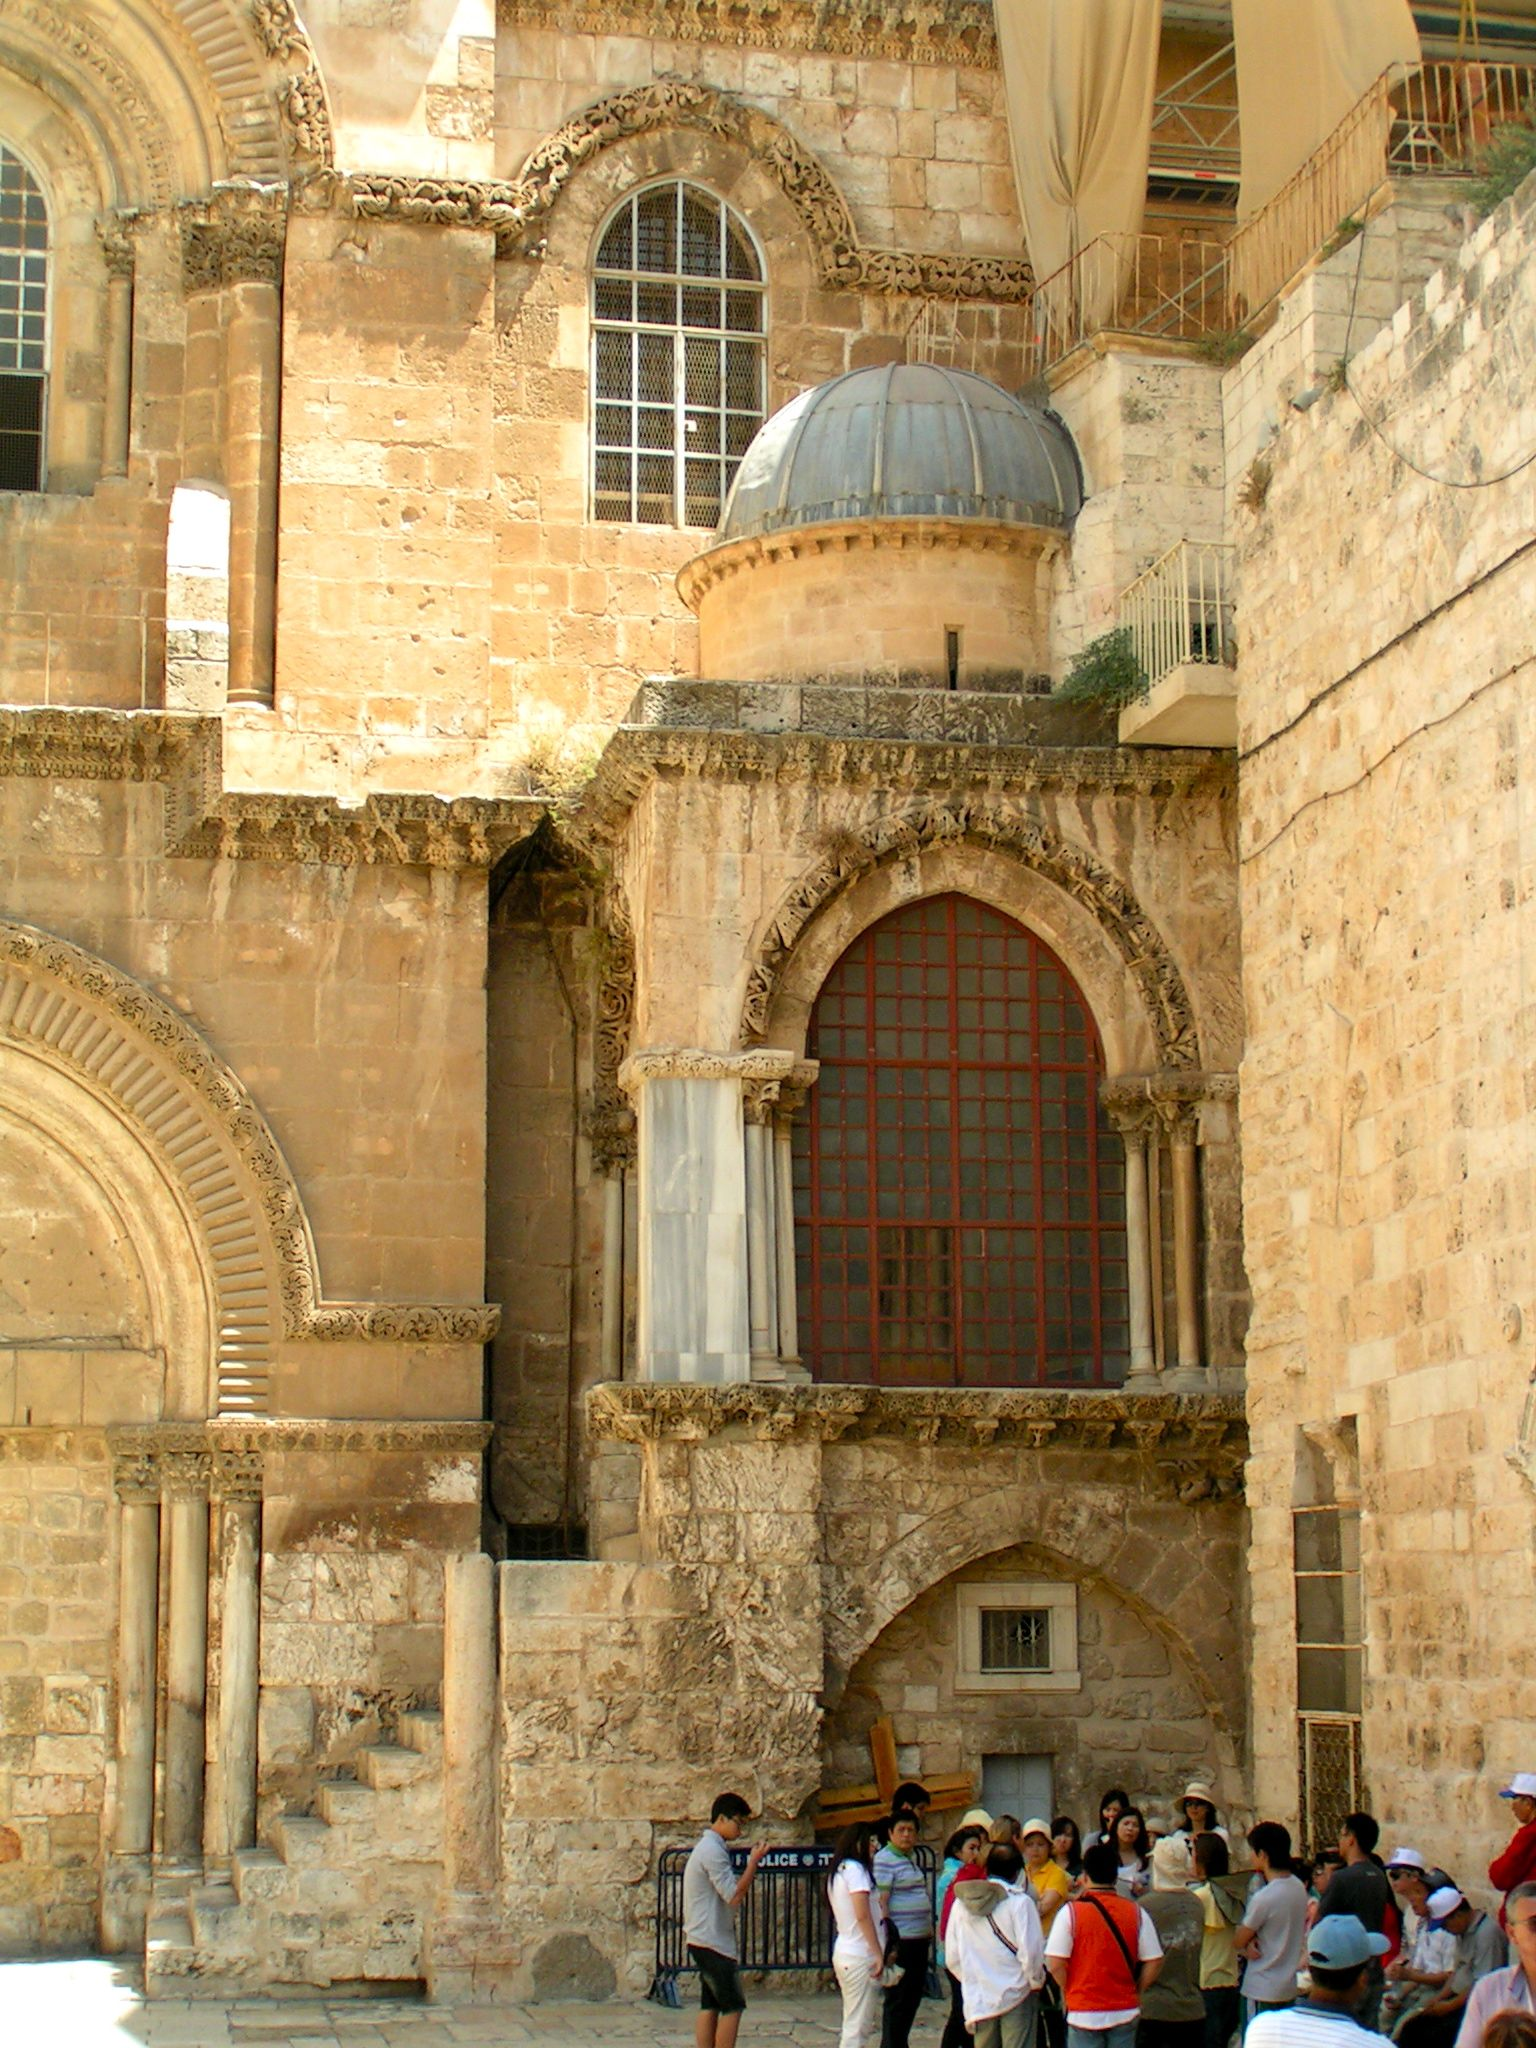 Church of the Holy Sepulchre, Israel.